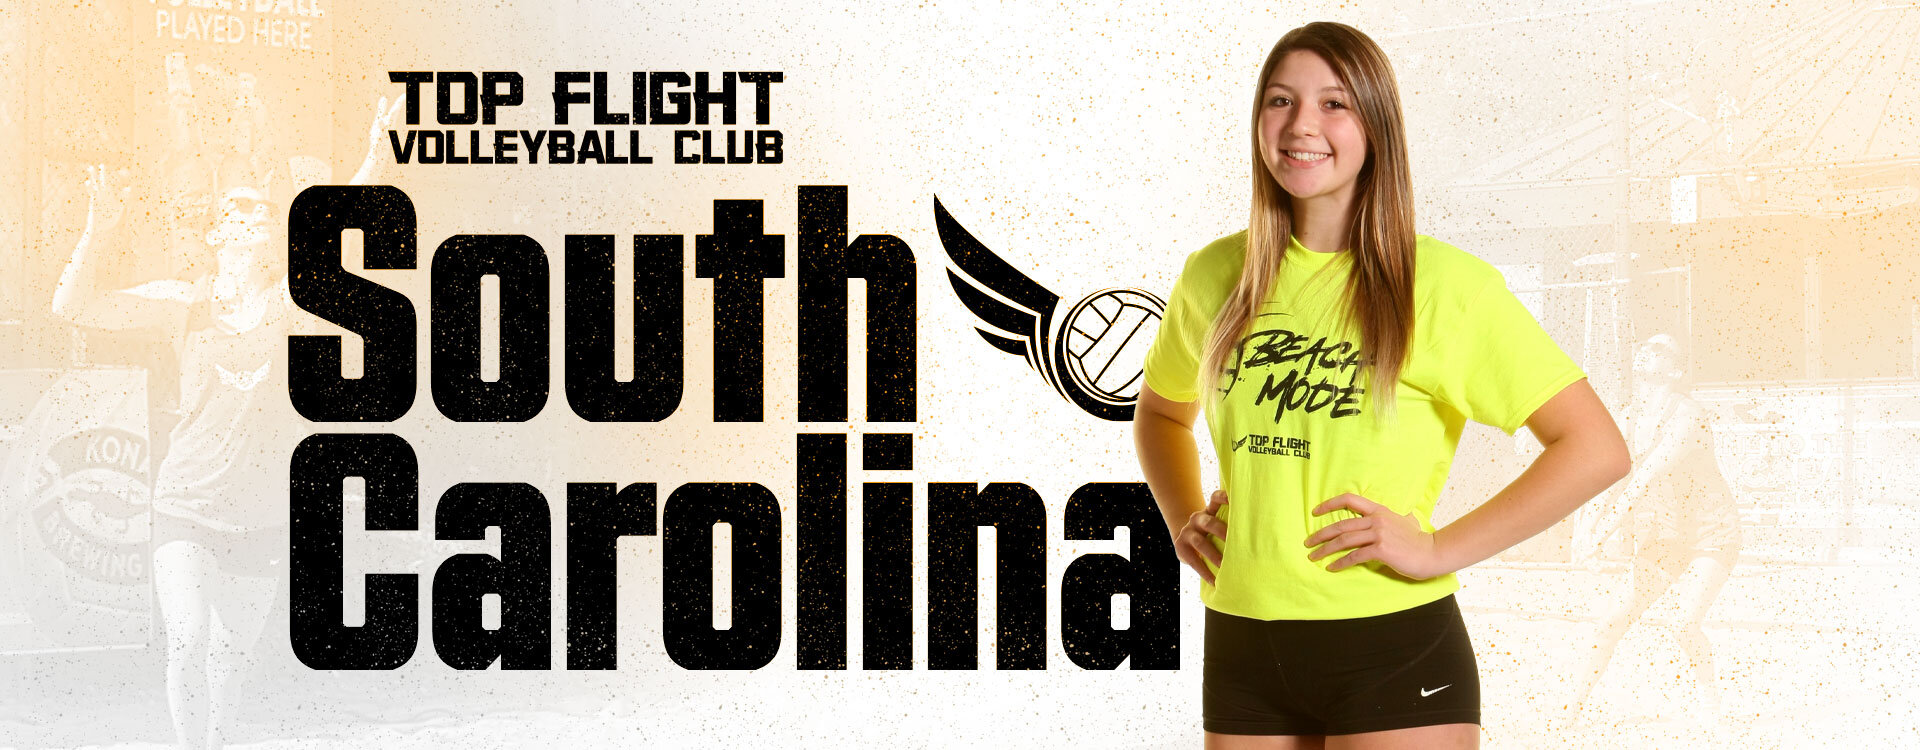 top-flight-volleyball-tryout-header